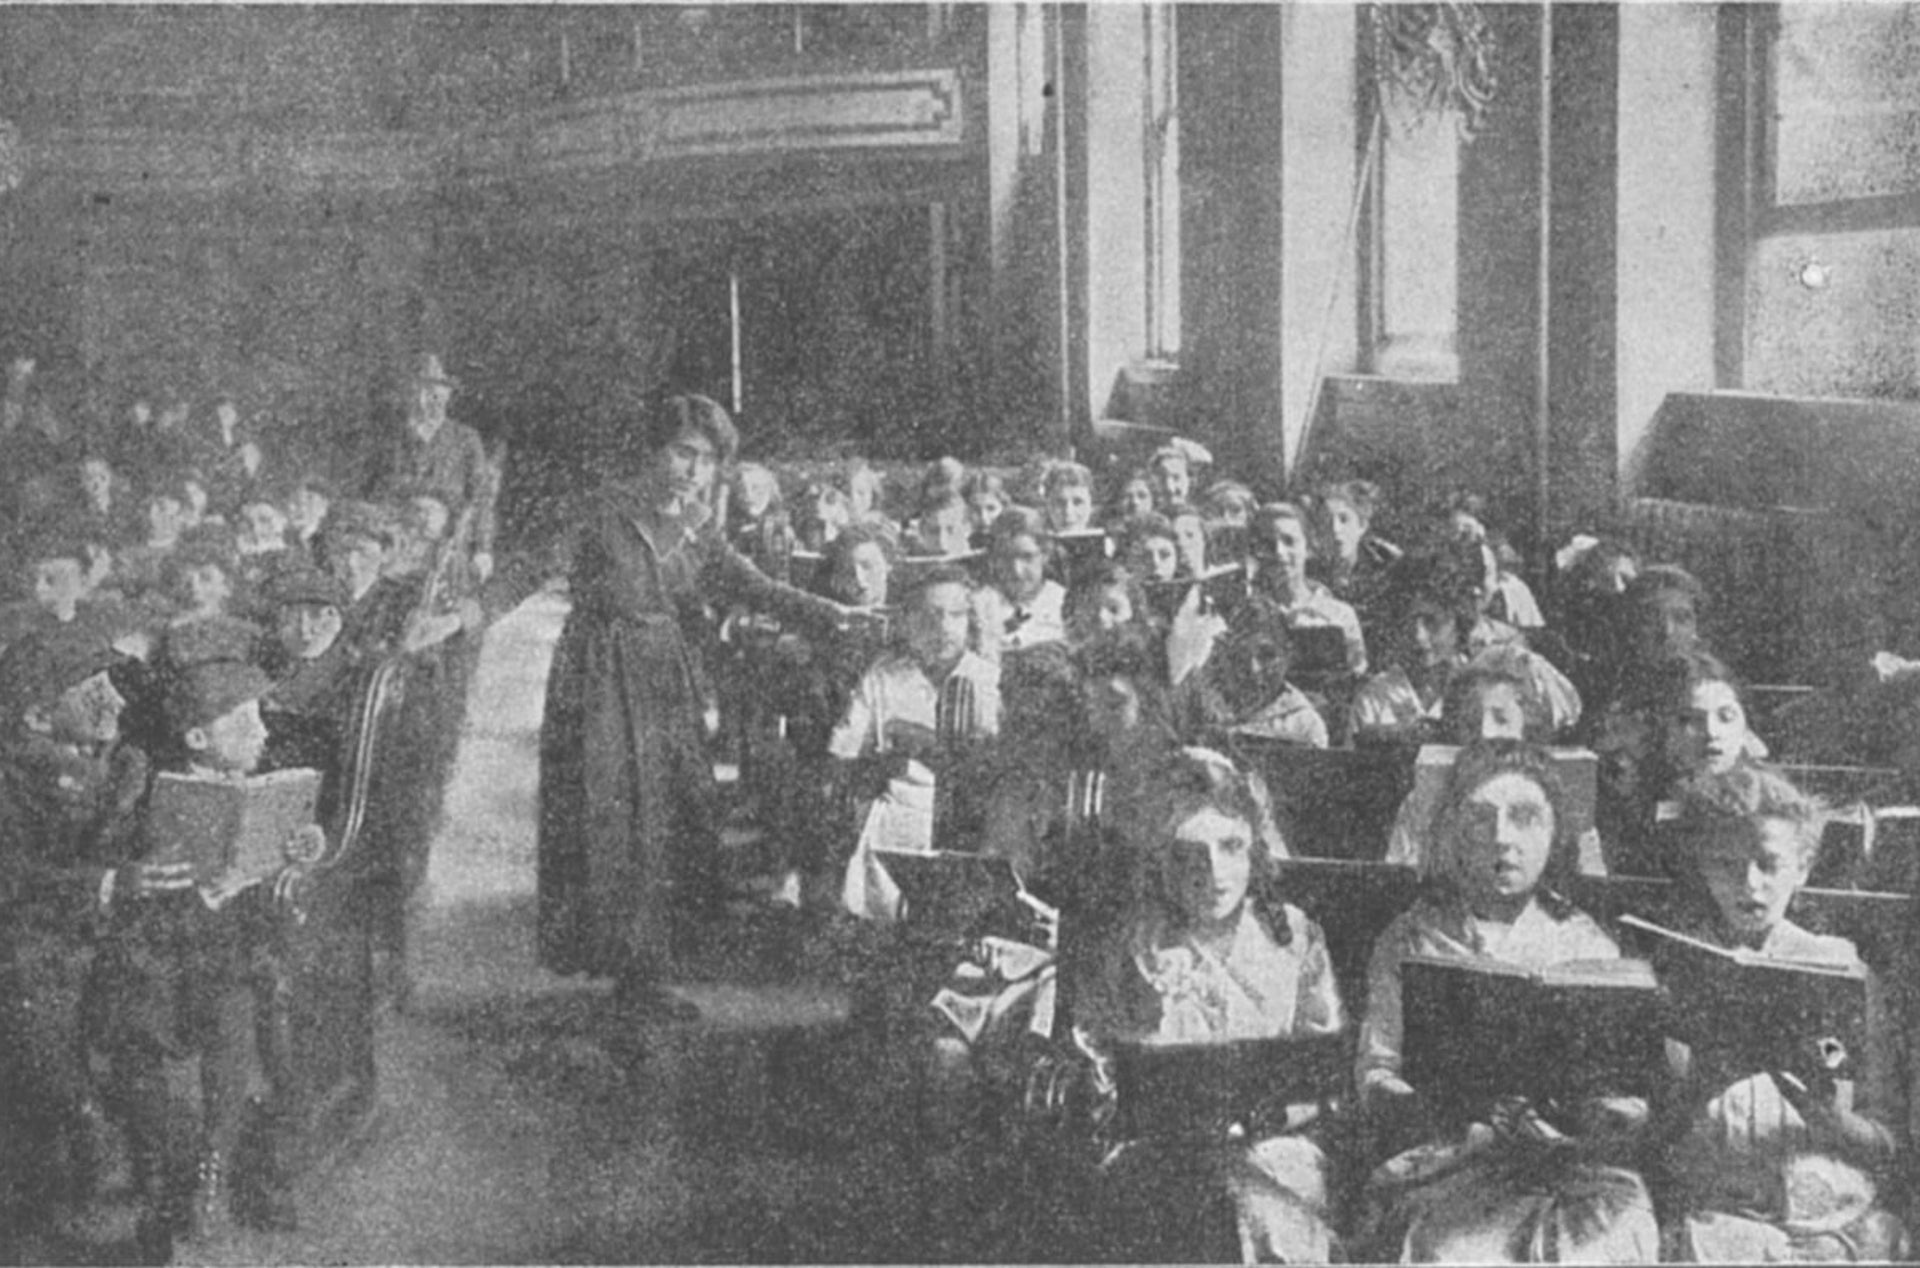 Jeffrey Gurock: Students at the Uptown Talmud Torah, circa 1917 (The Jewish Communal Register of New York City, 1917-1918).